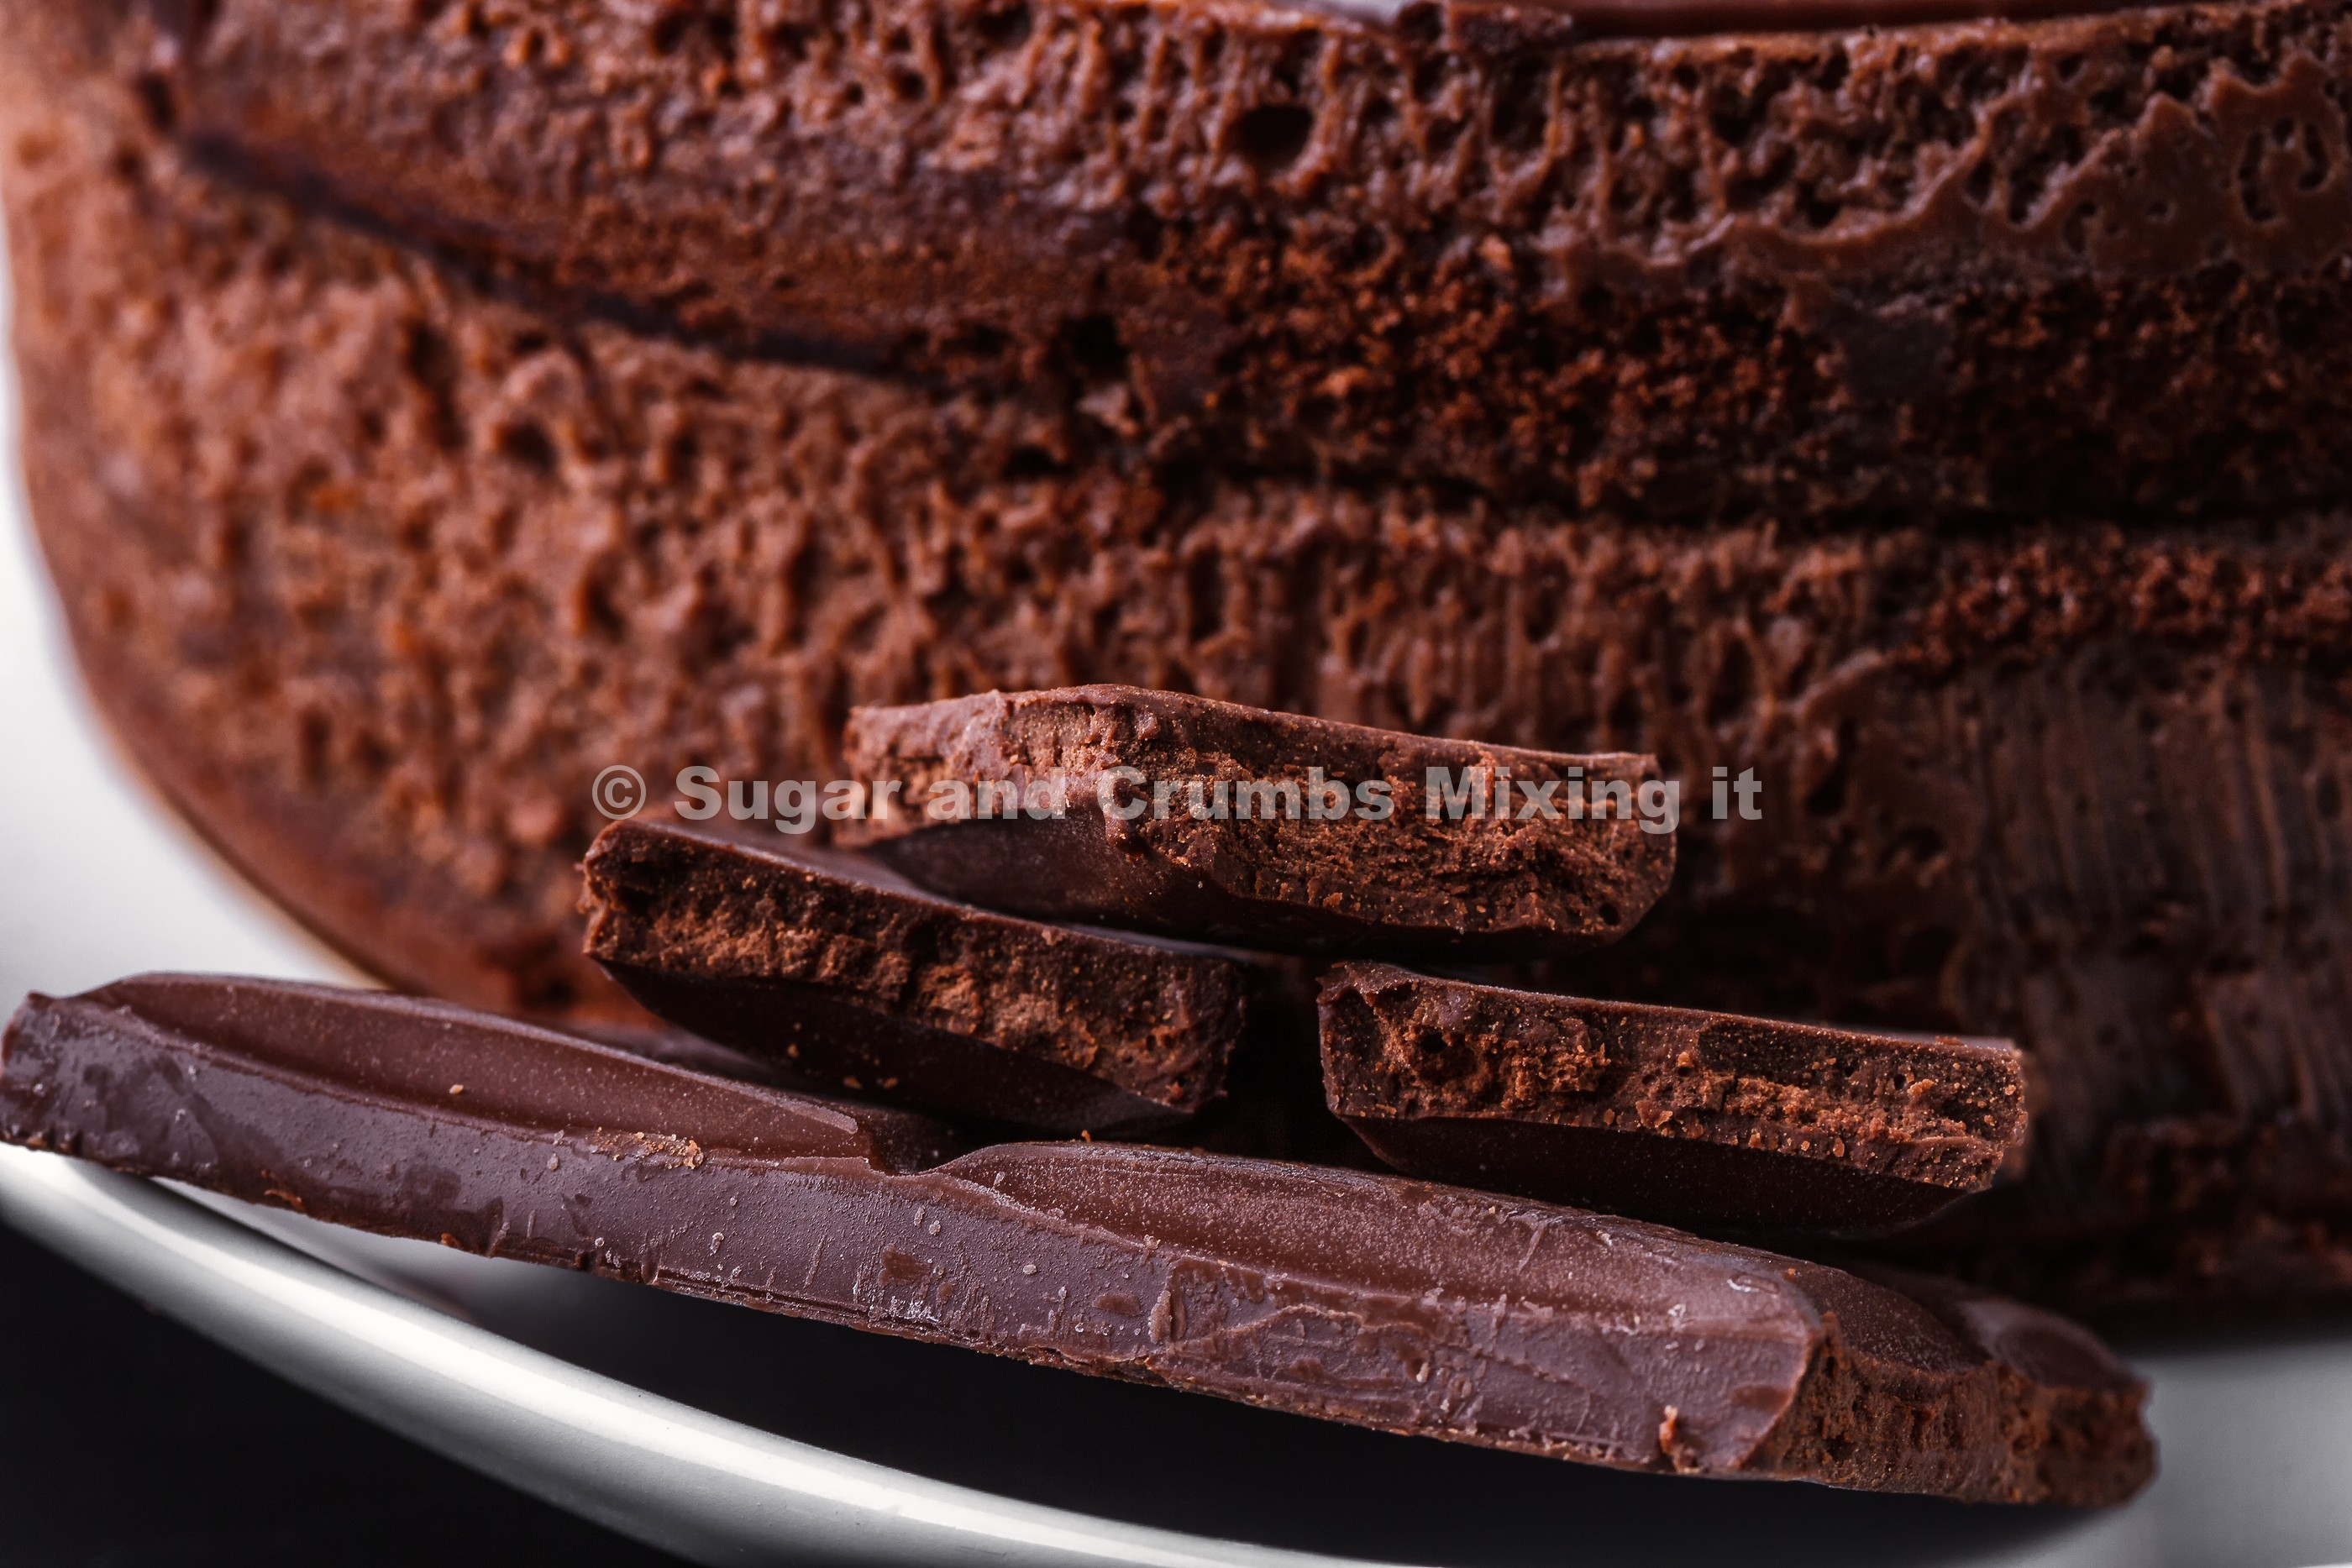 Easy Chocolate Sponge Cake